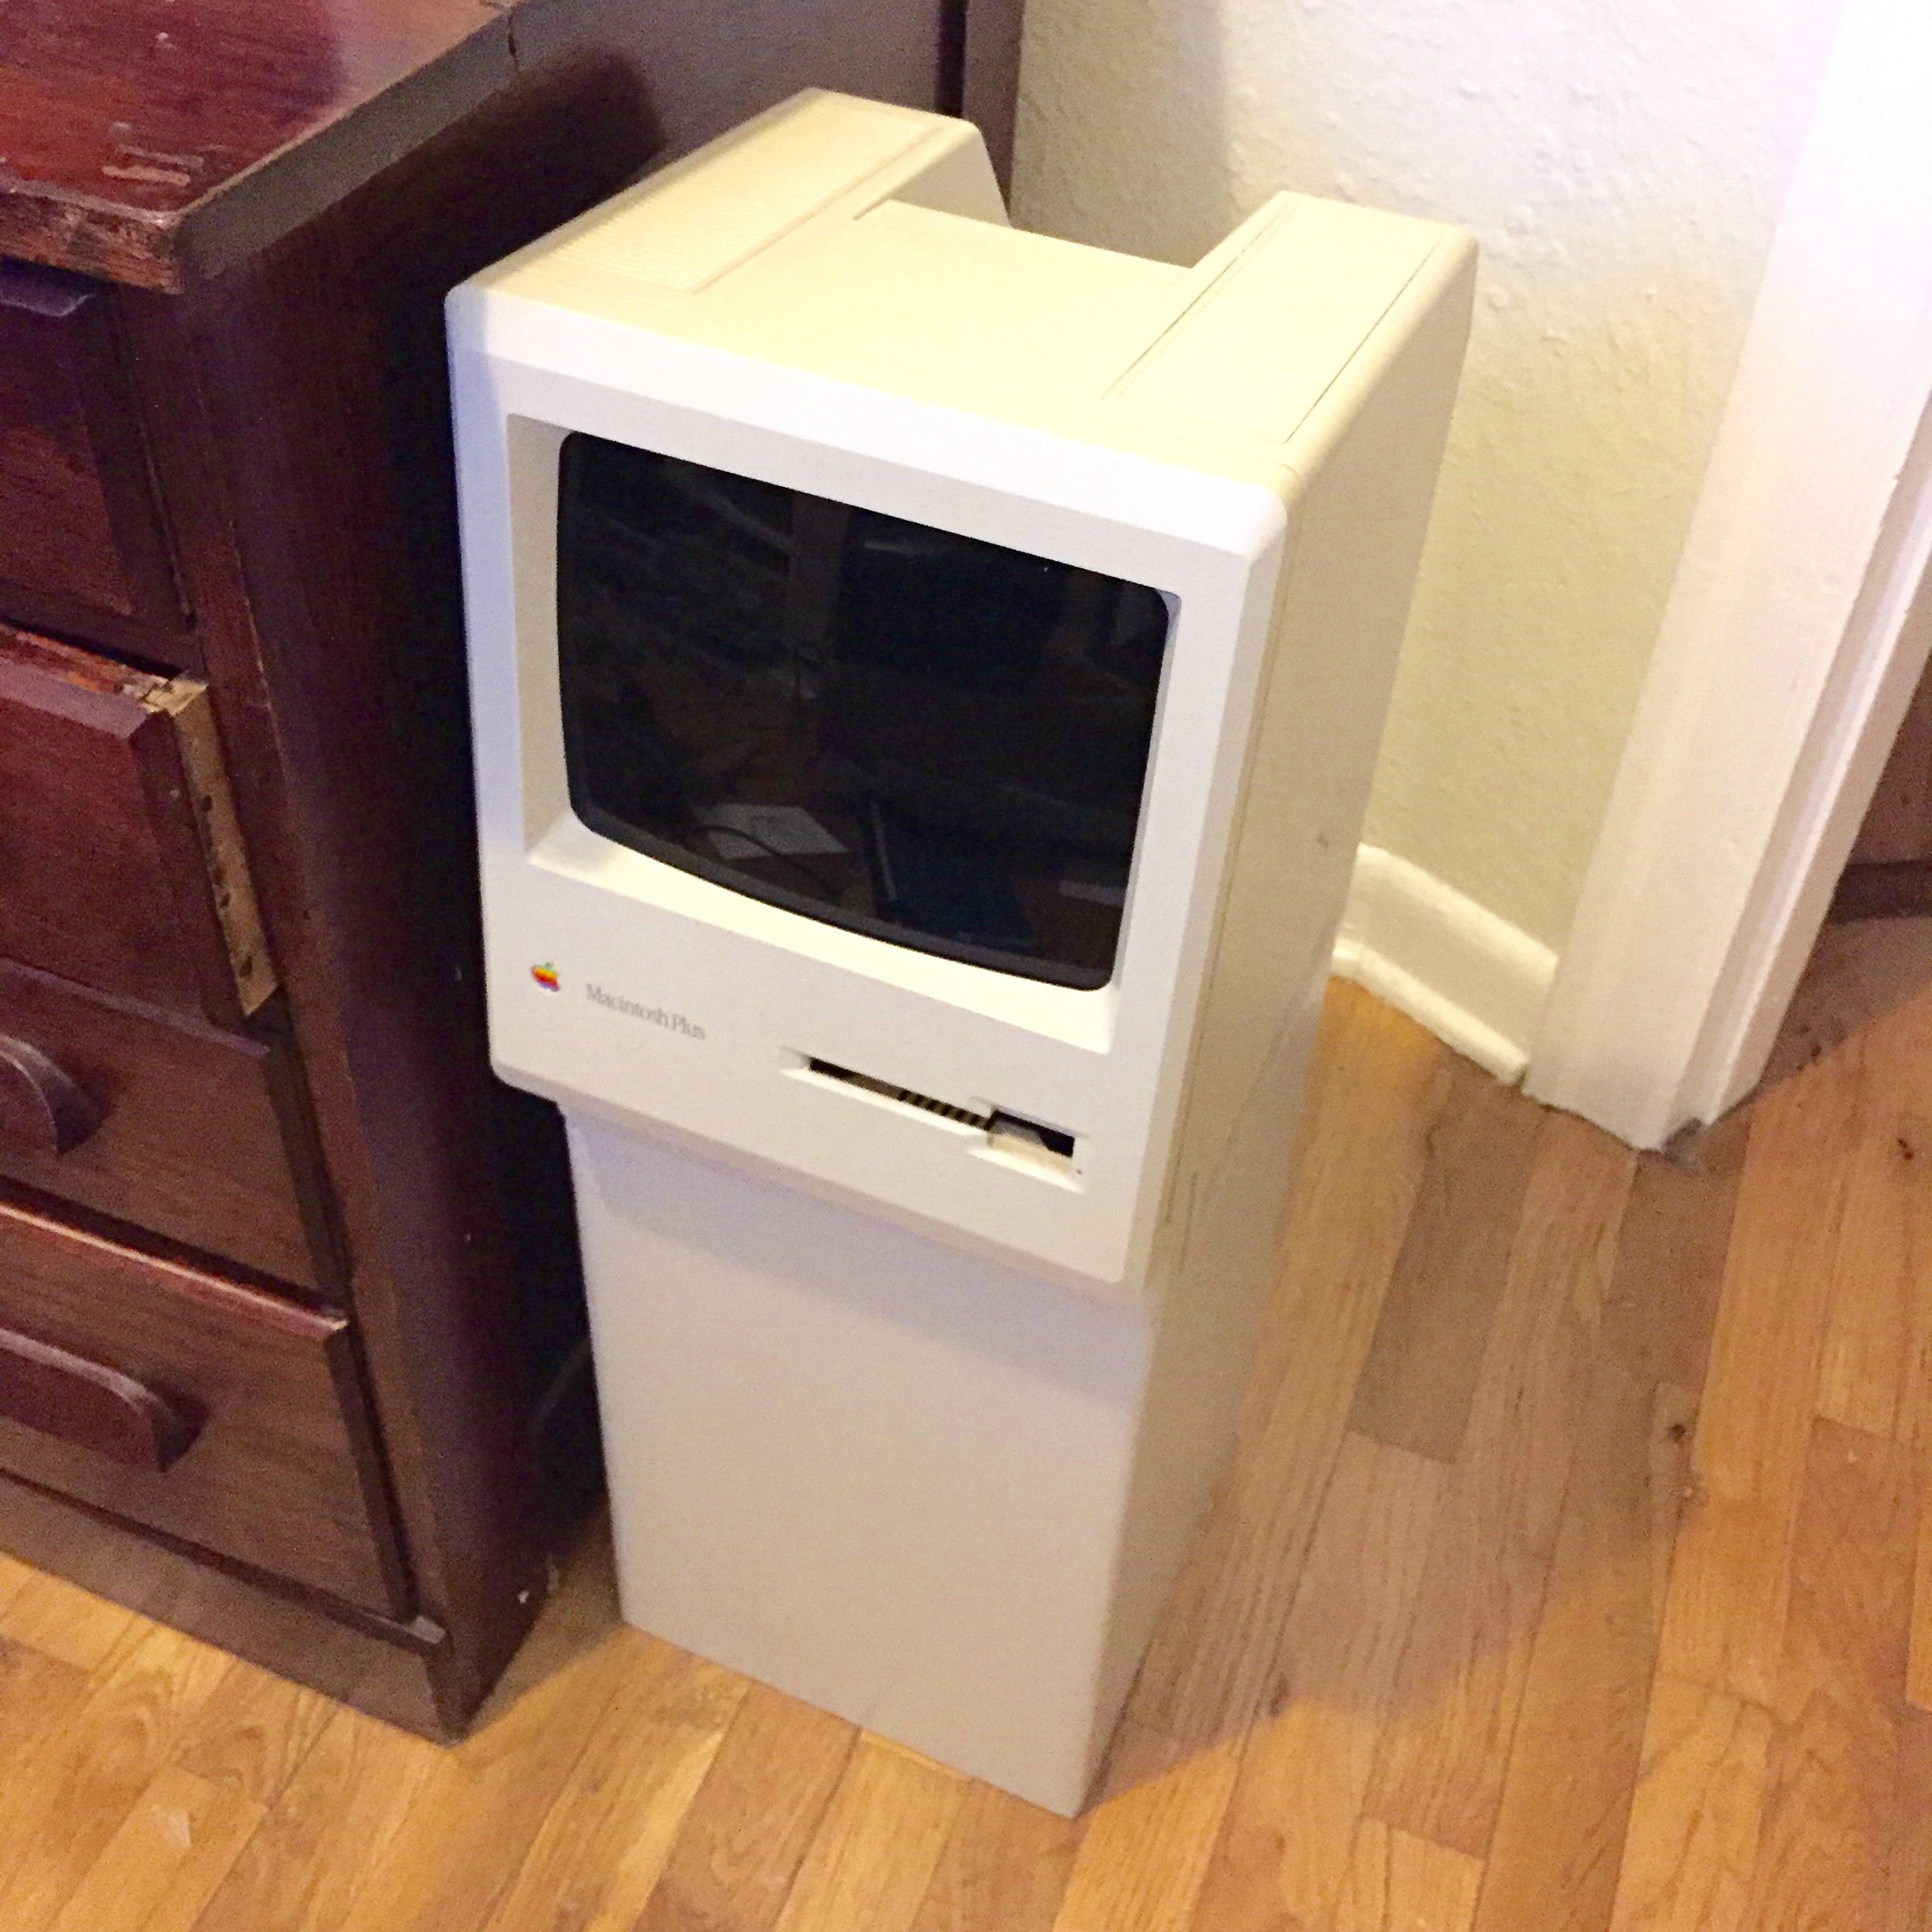 Classic Mac Turned Into A Trash Can